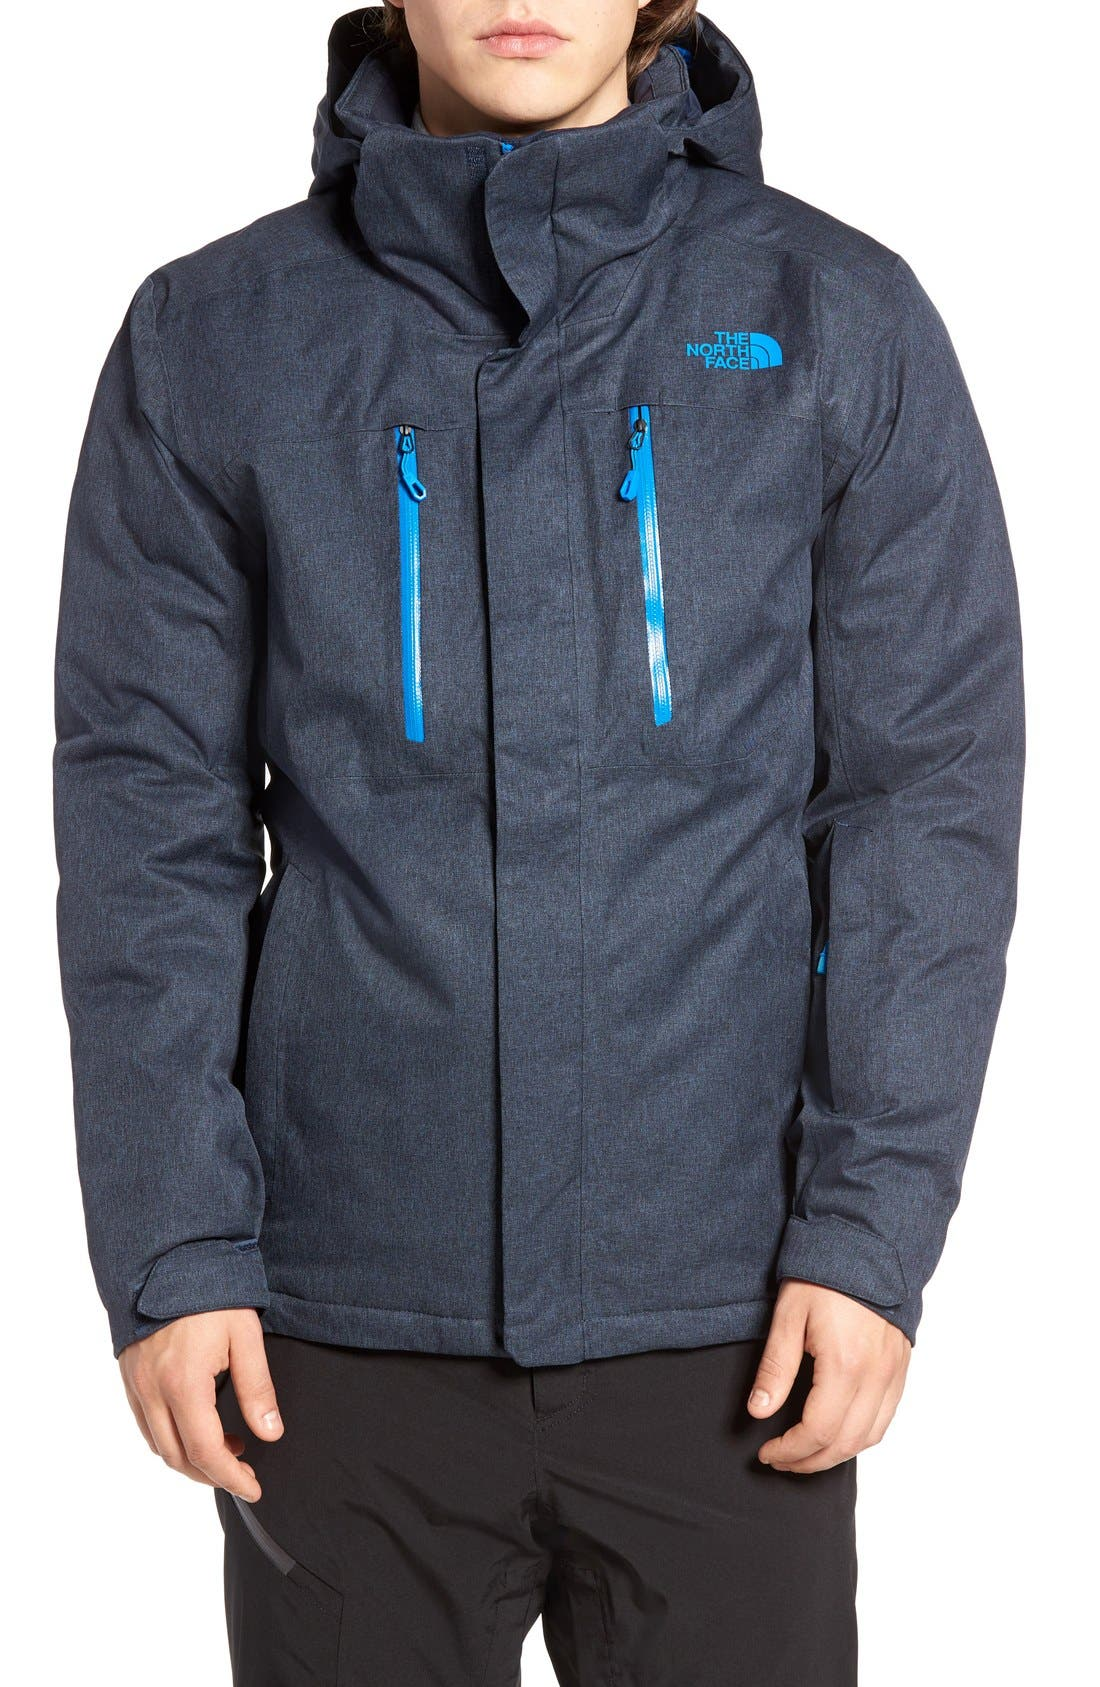 Alternate Image 1 Selected - The North Face Powdance Waterproof Jacket